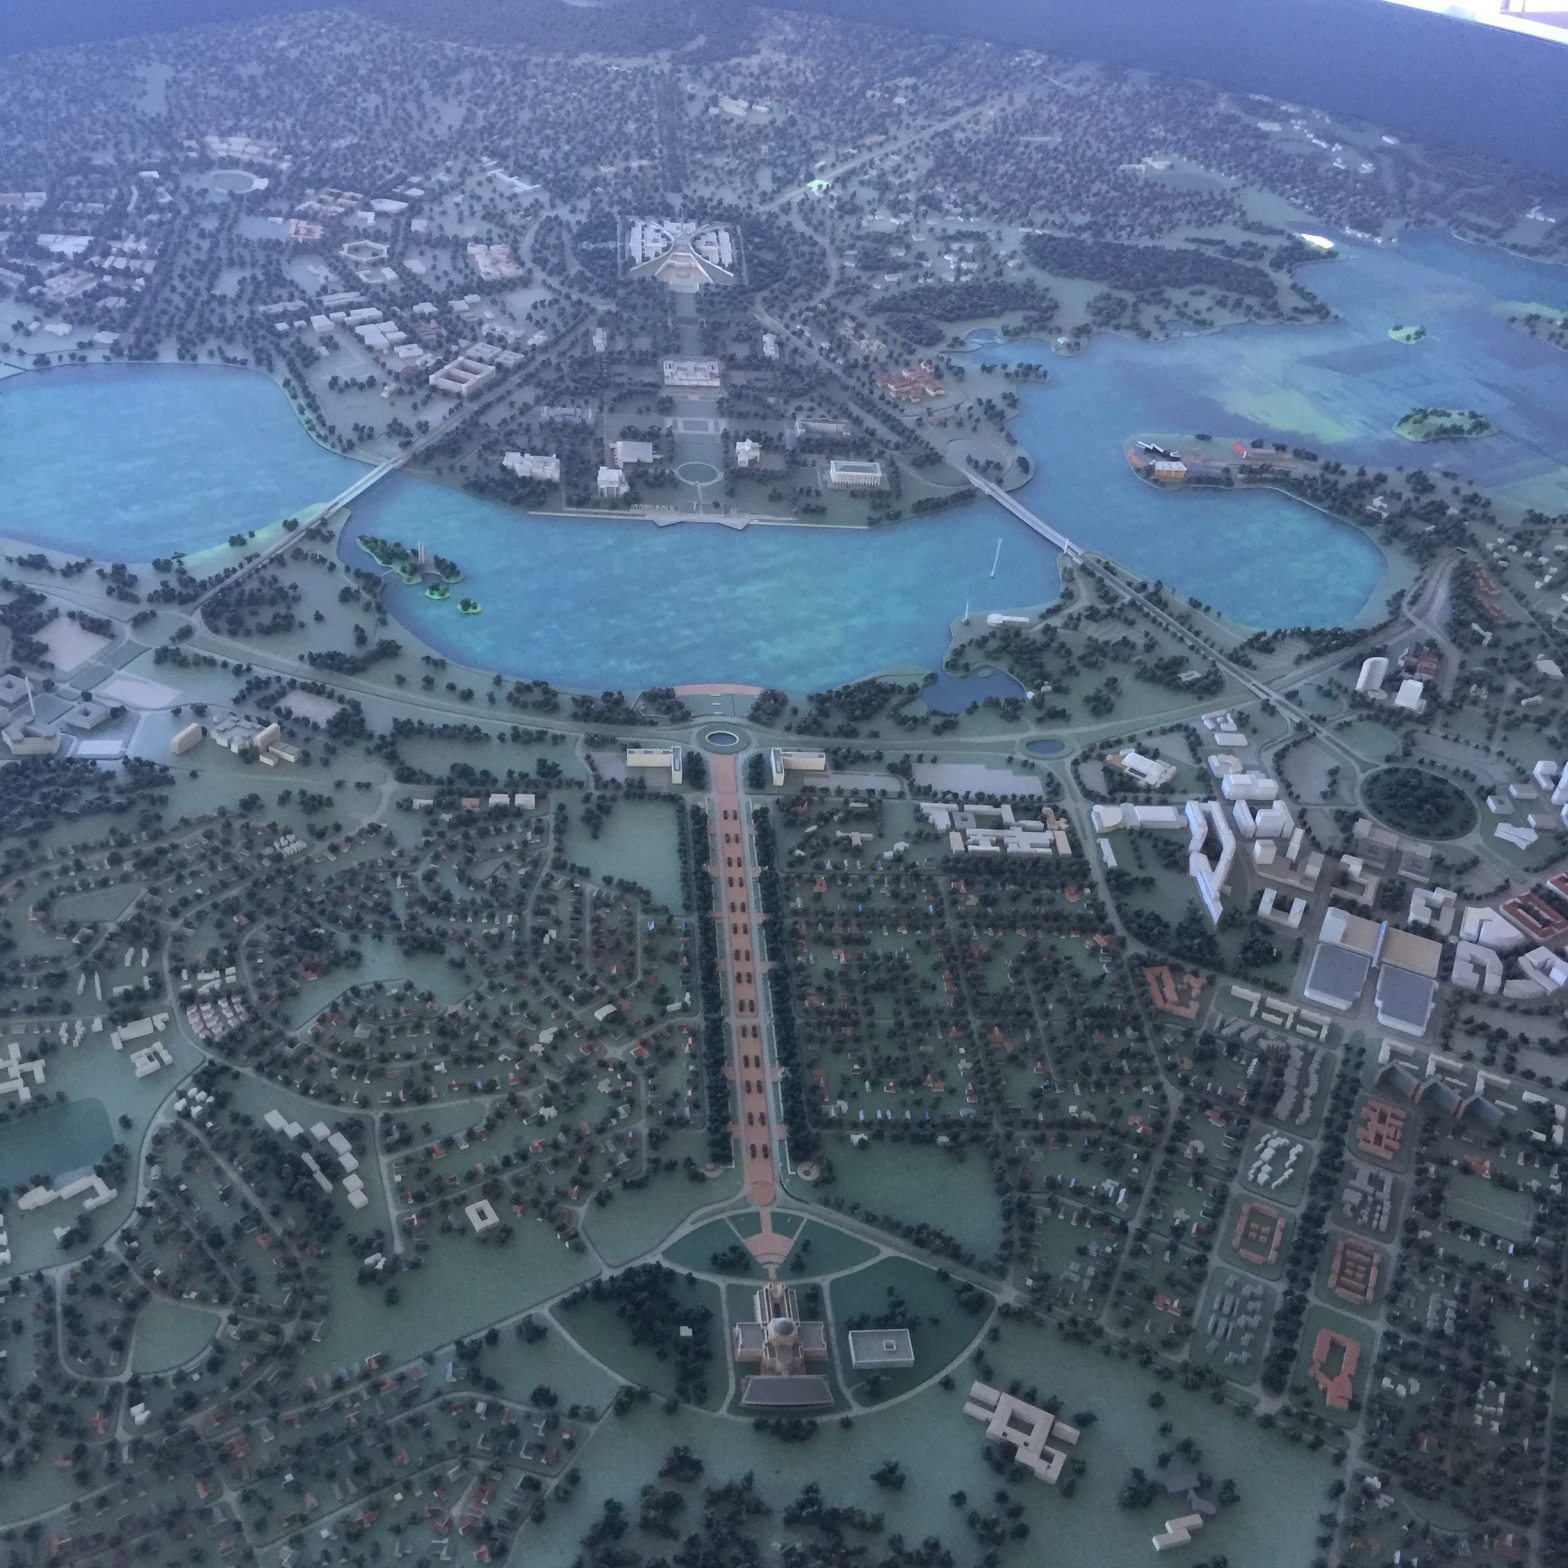 National Capital Exhibition model of Canberra